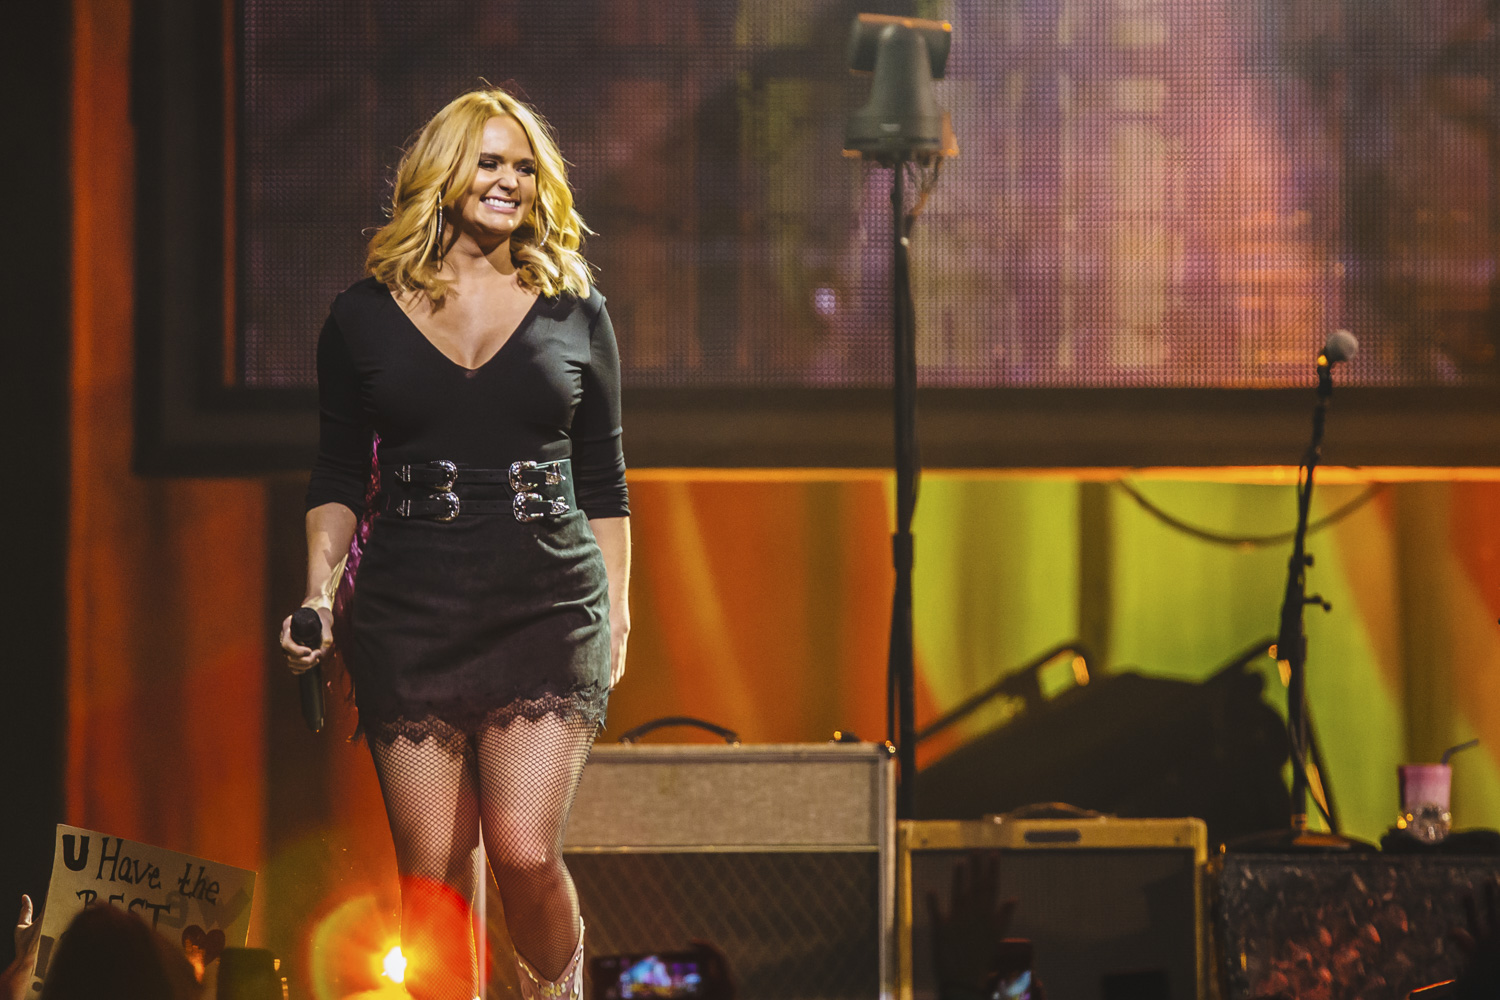 The Livin' Like Hippies Tour swung by Tacoma last night (February 1, 2018) as one of the Queens of Country herself, Ms. Miranda Lambert, left it all on the floor at the Dome. The stop was Lambert's first on the tour; she'll go on to play 20 other shows throughout the country, ending in March 2018. (Image: Sunita Martini / Seattle Refined)